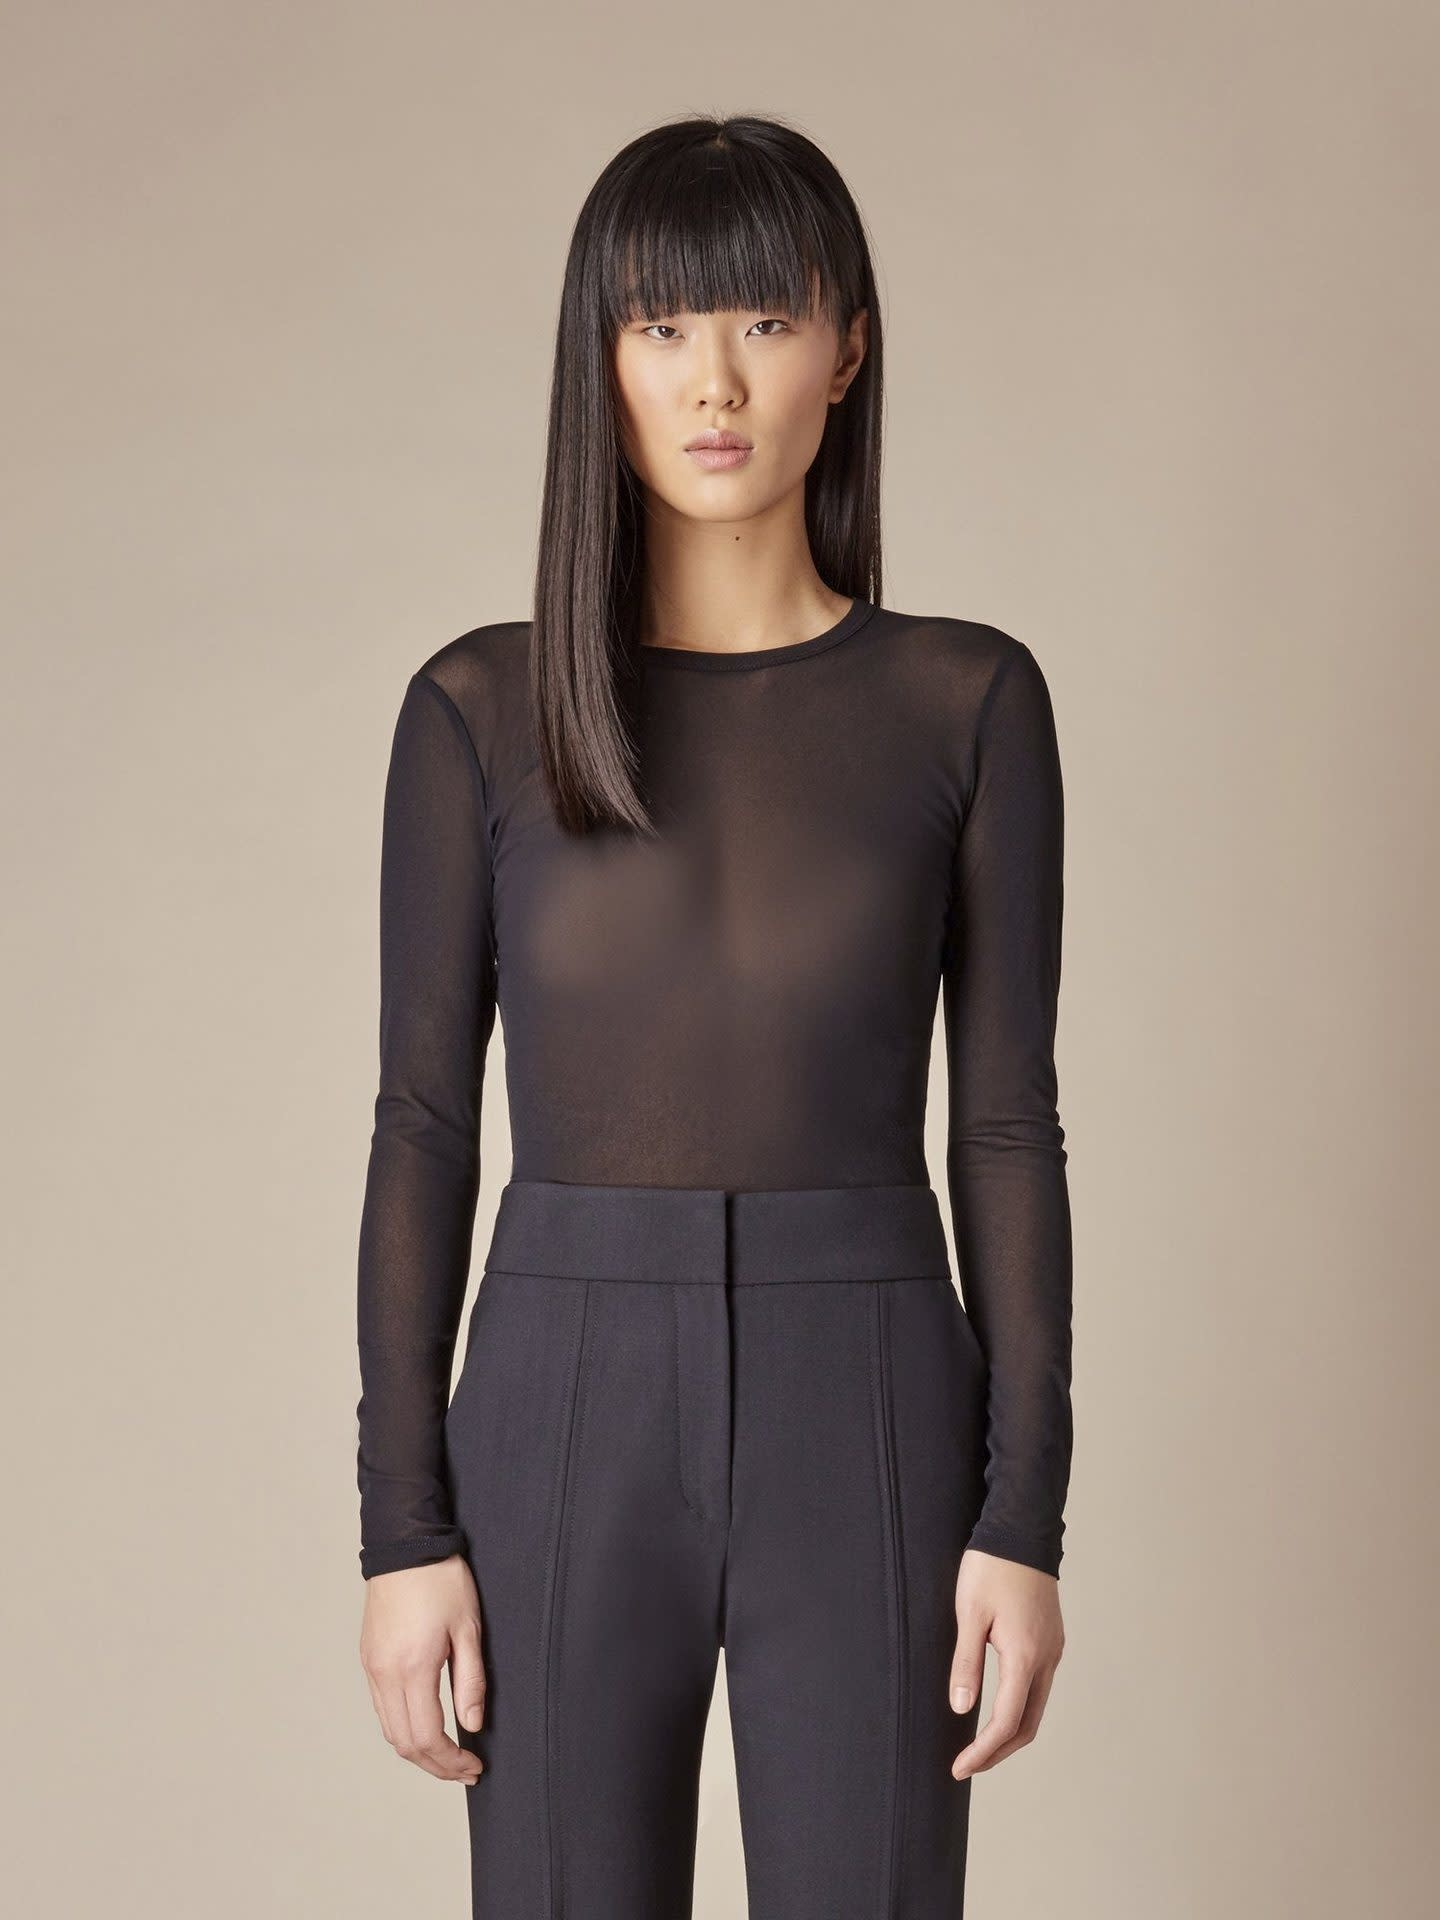 Judith & Charles Barrie Top